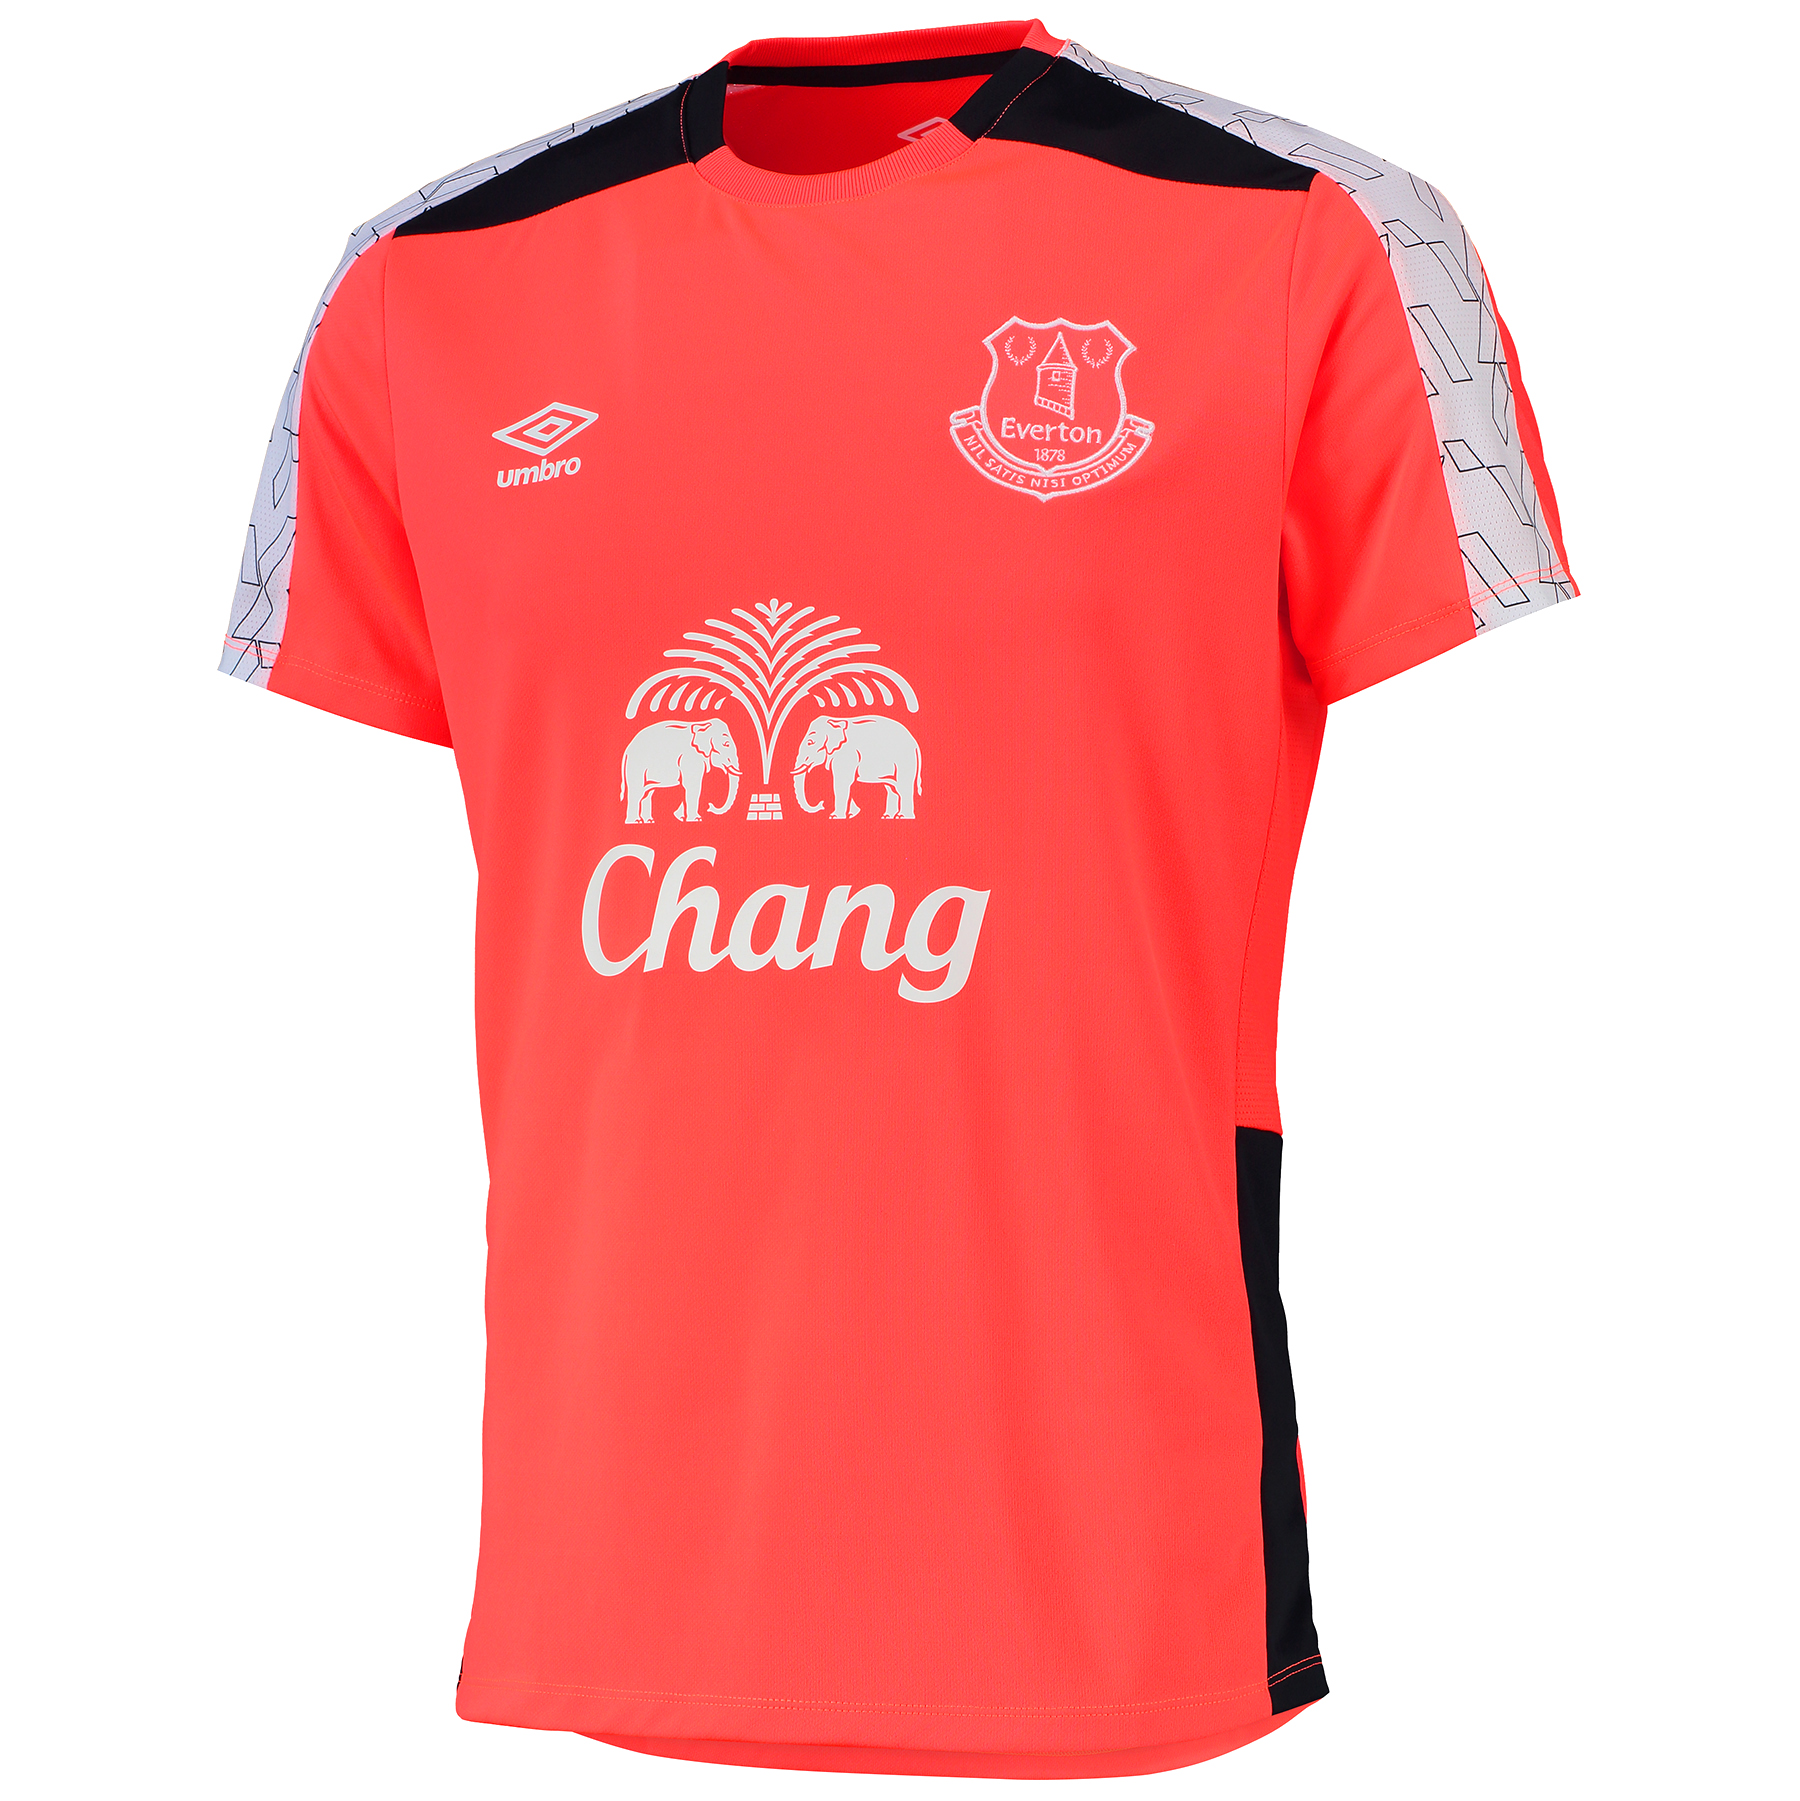 Everton Training Jersey - Fiery Coral/Galaxy/White